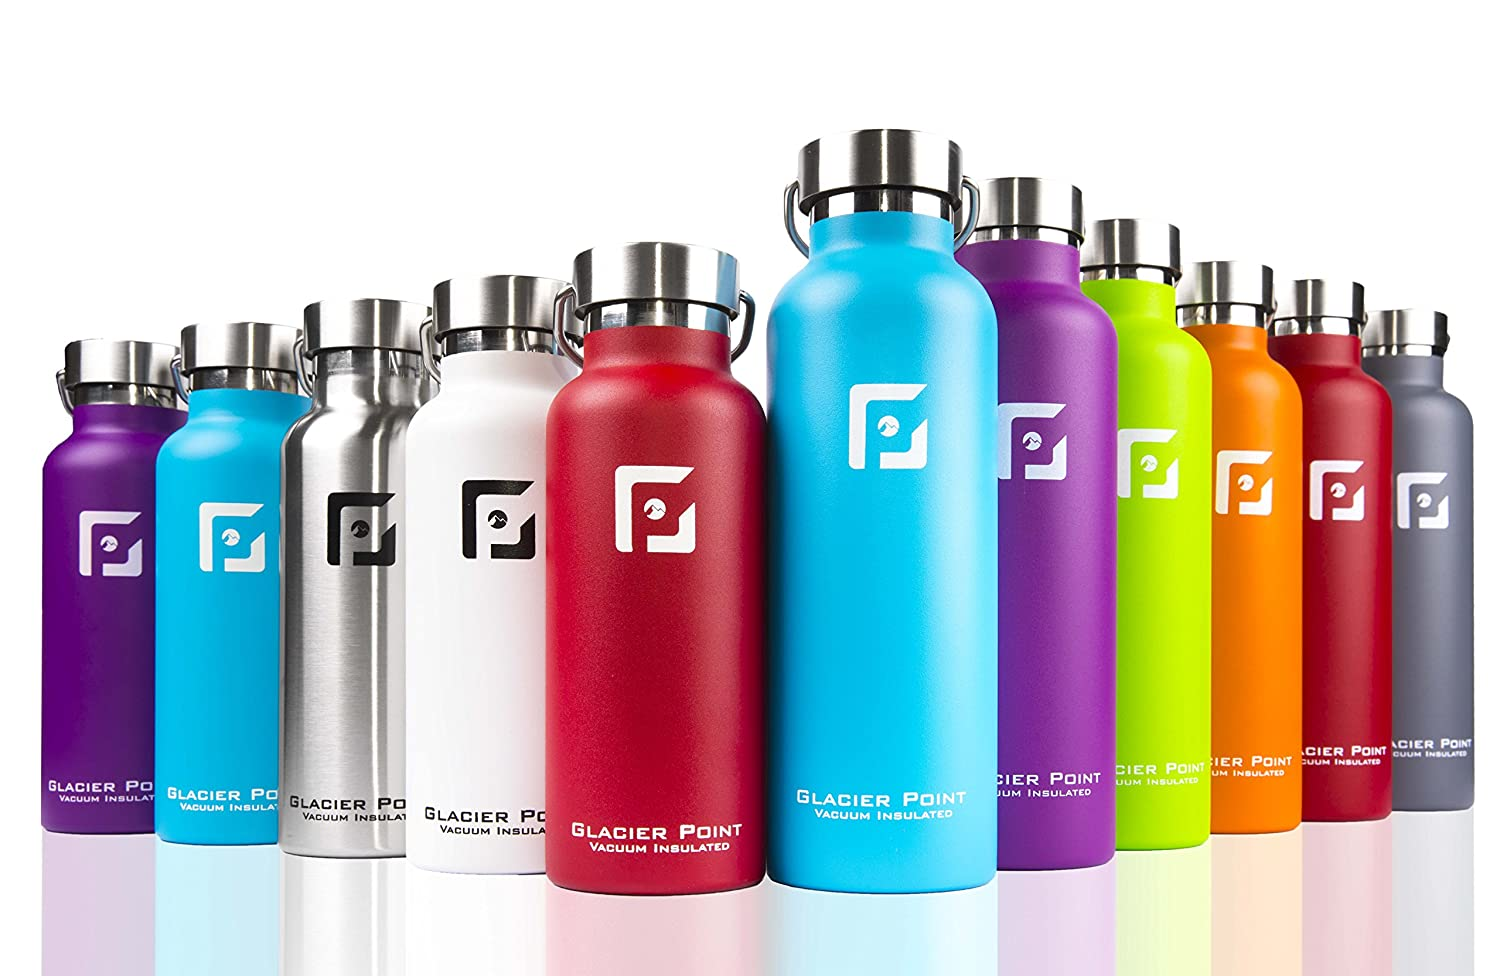 23aa7f9bcf Glacier Point Vacuum Insulated Stainless Steel Water Bottle  (32oz 25oz 17oz) Double Walled Construction, Premium Powder Coating, Leak  Proof, Sweat Proof.